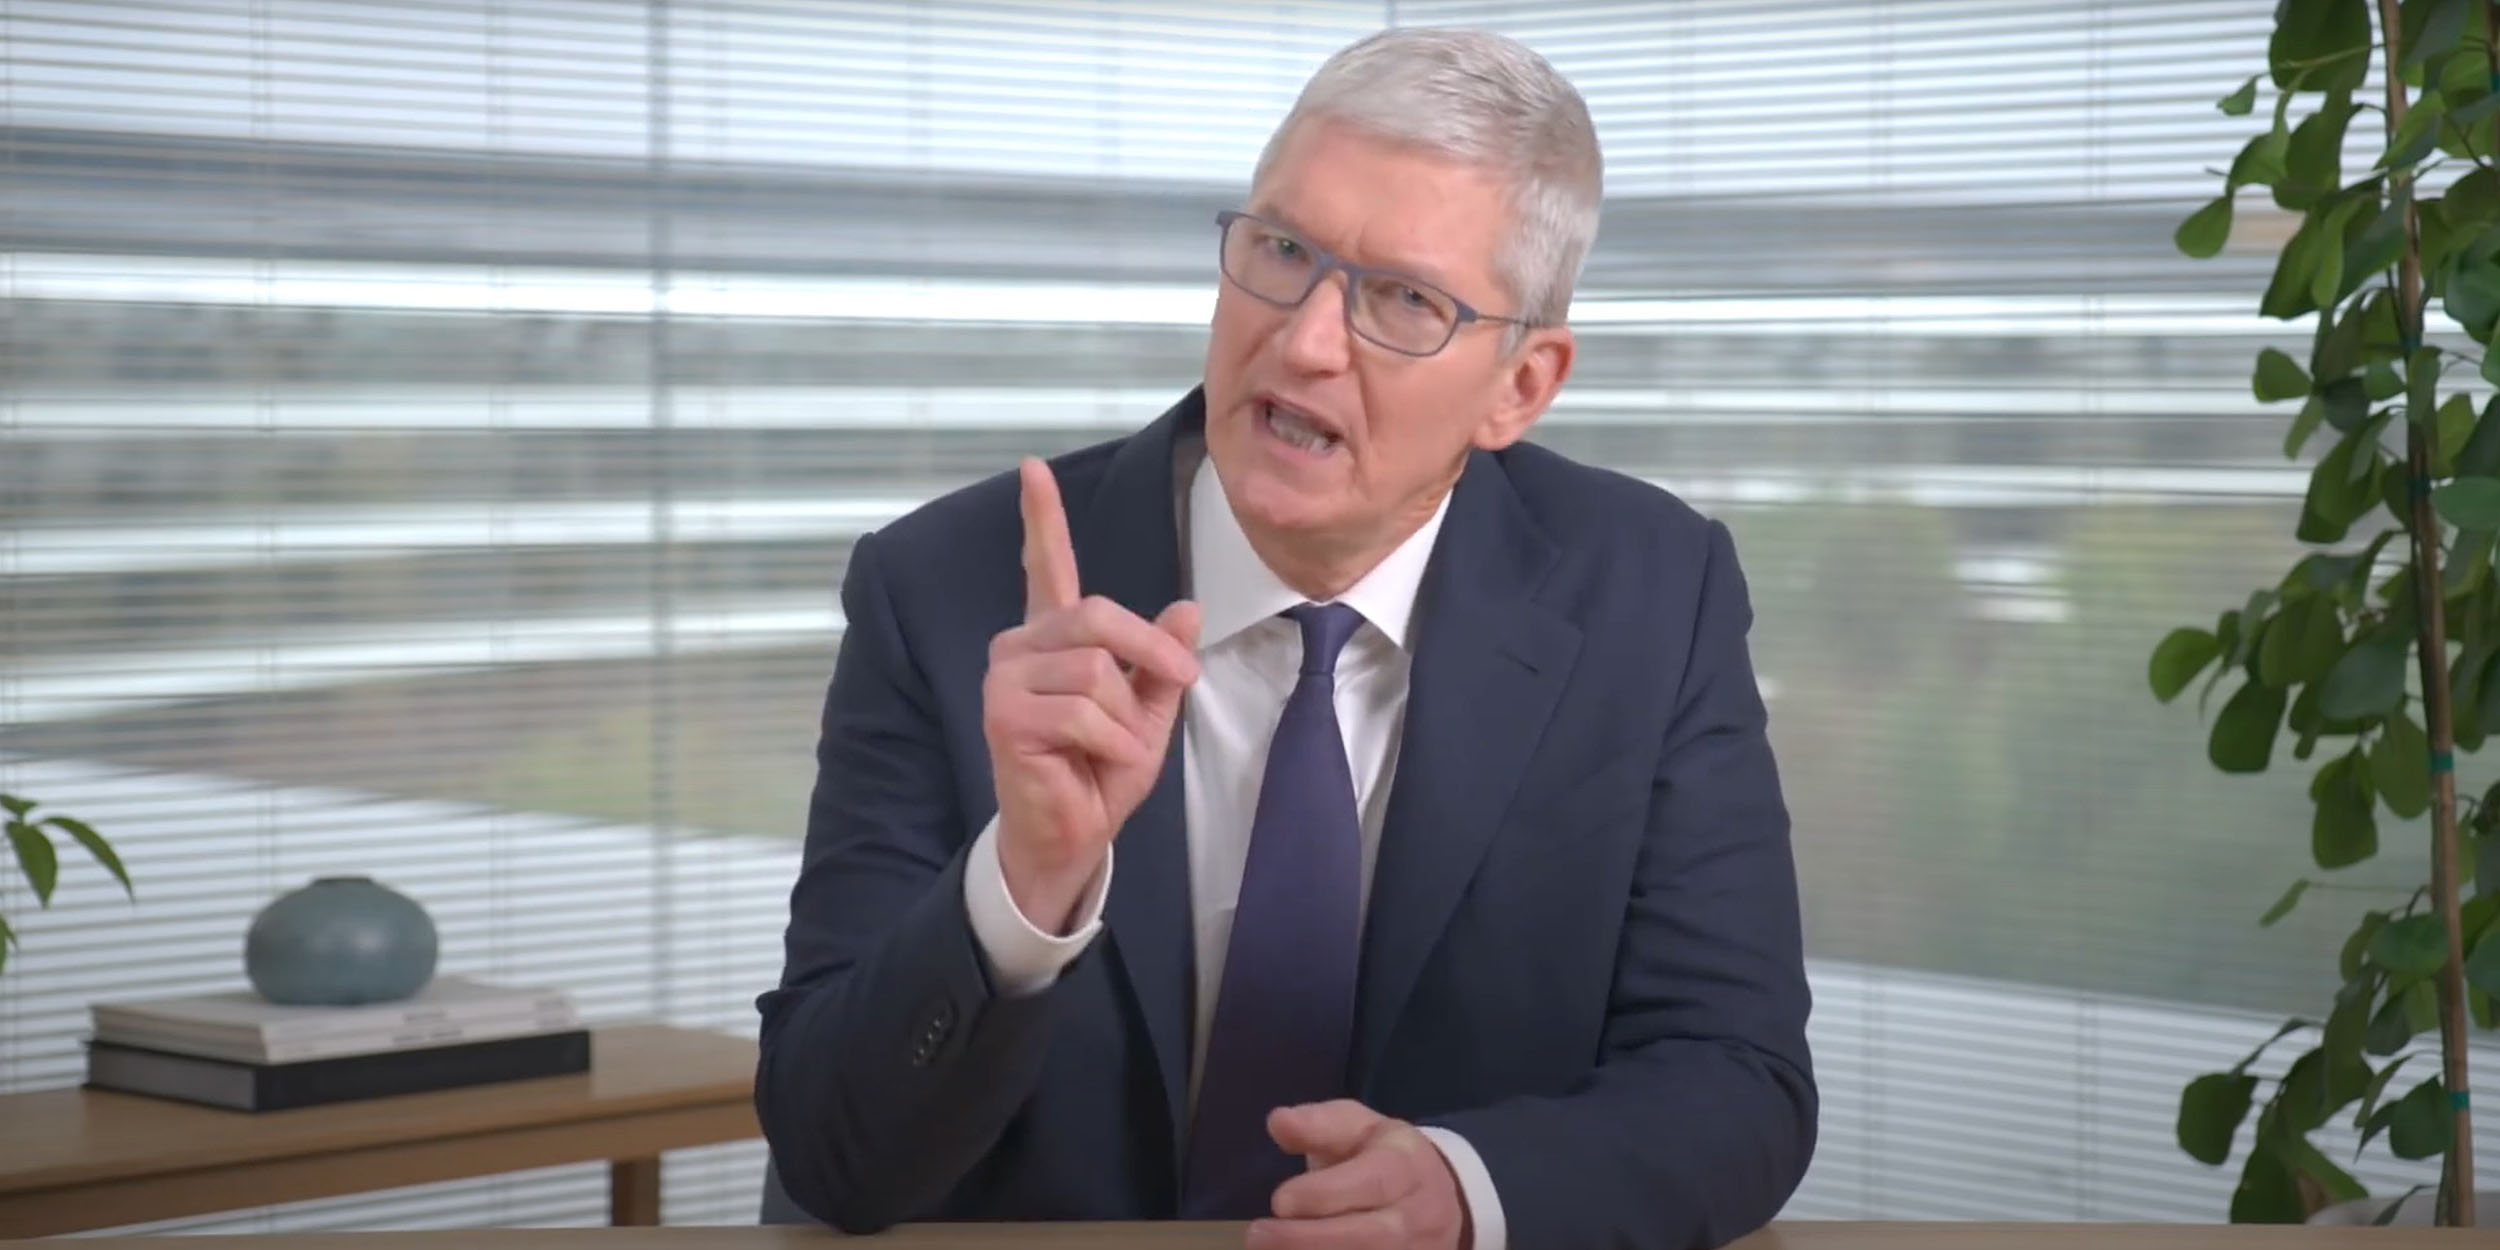 Tim Cook's testimony in Epic case will be key